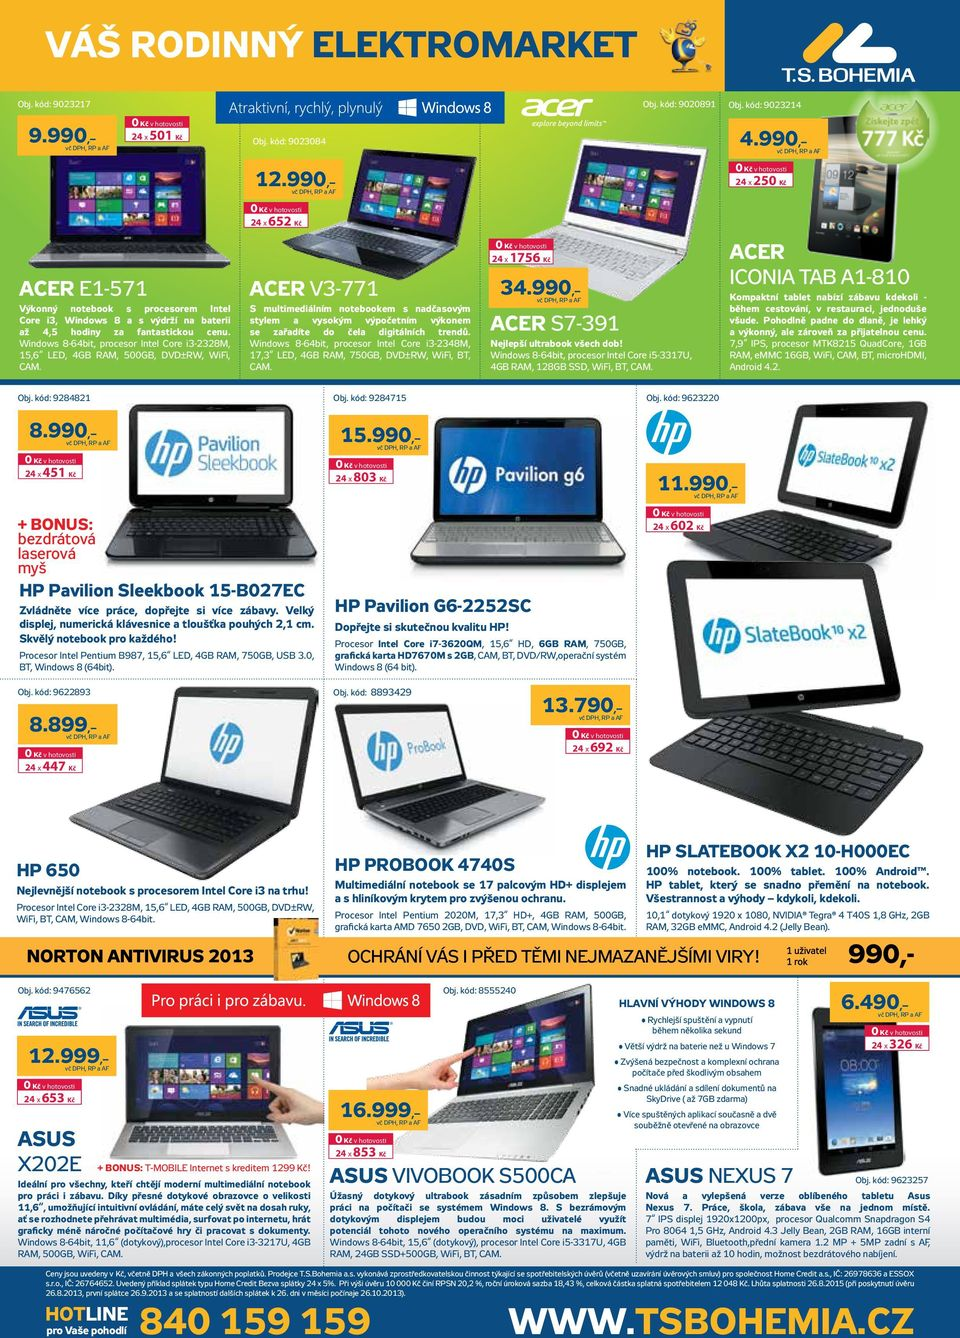 Windows 8-64bit, procesor Intel Core i3-2328m, 15,6 LED, 4GB RAM, 500GB, DVD±RW, WiFi, CAM.